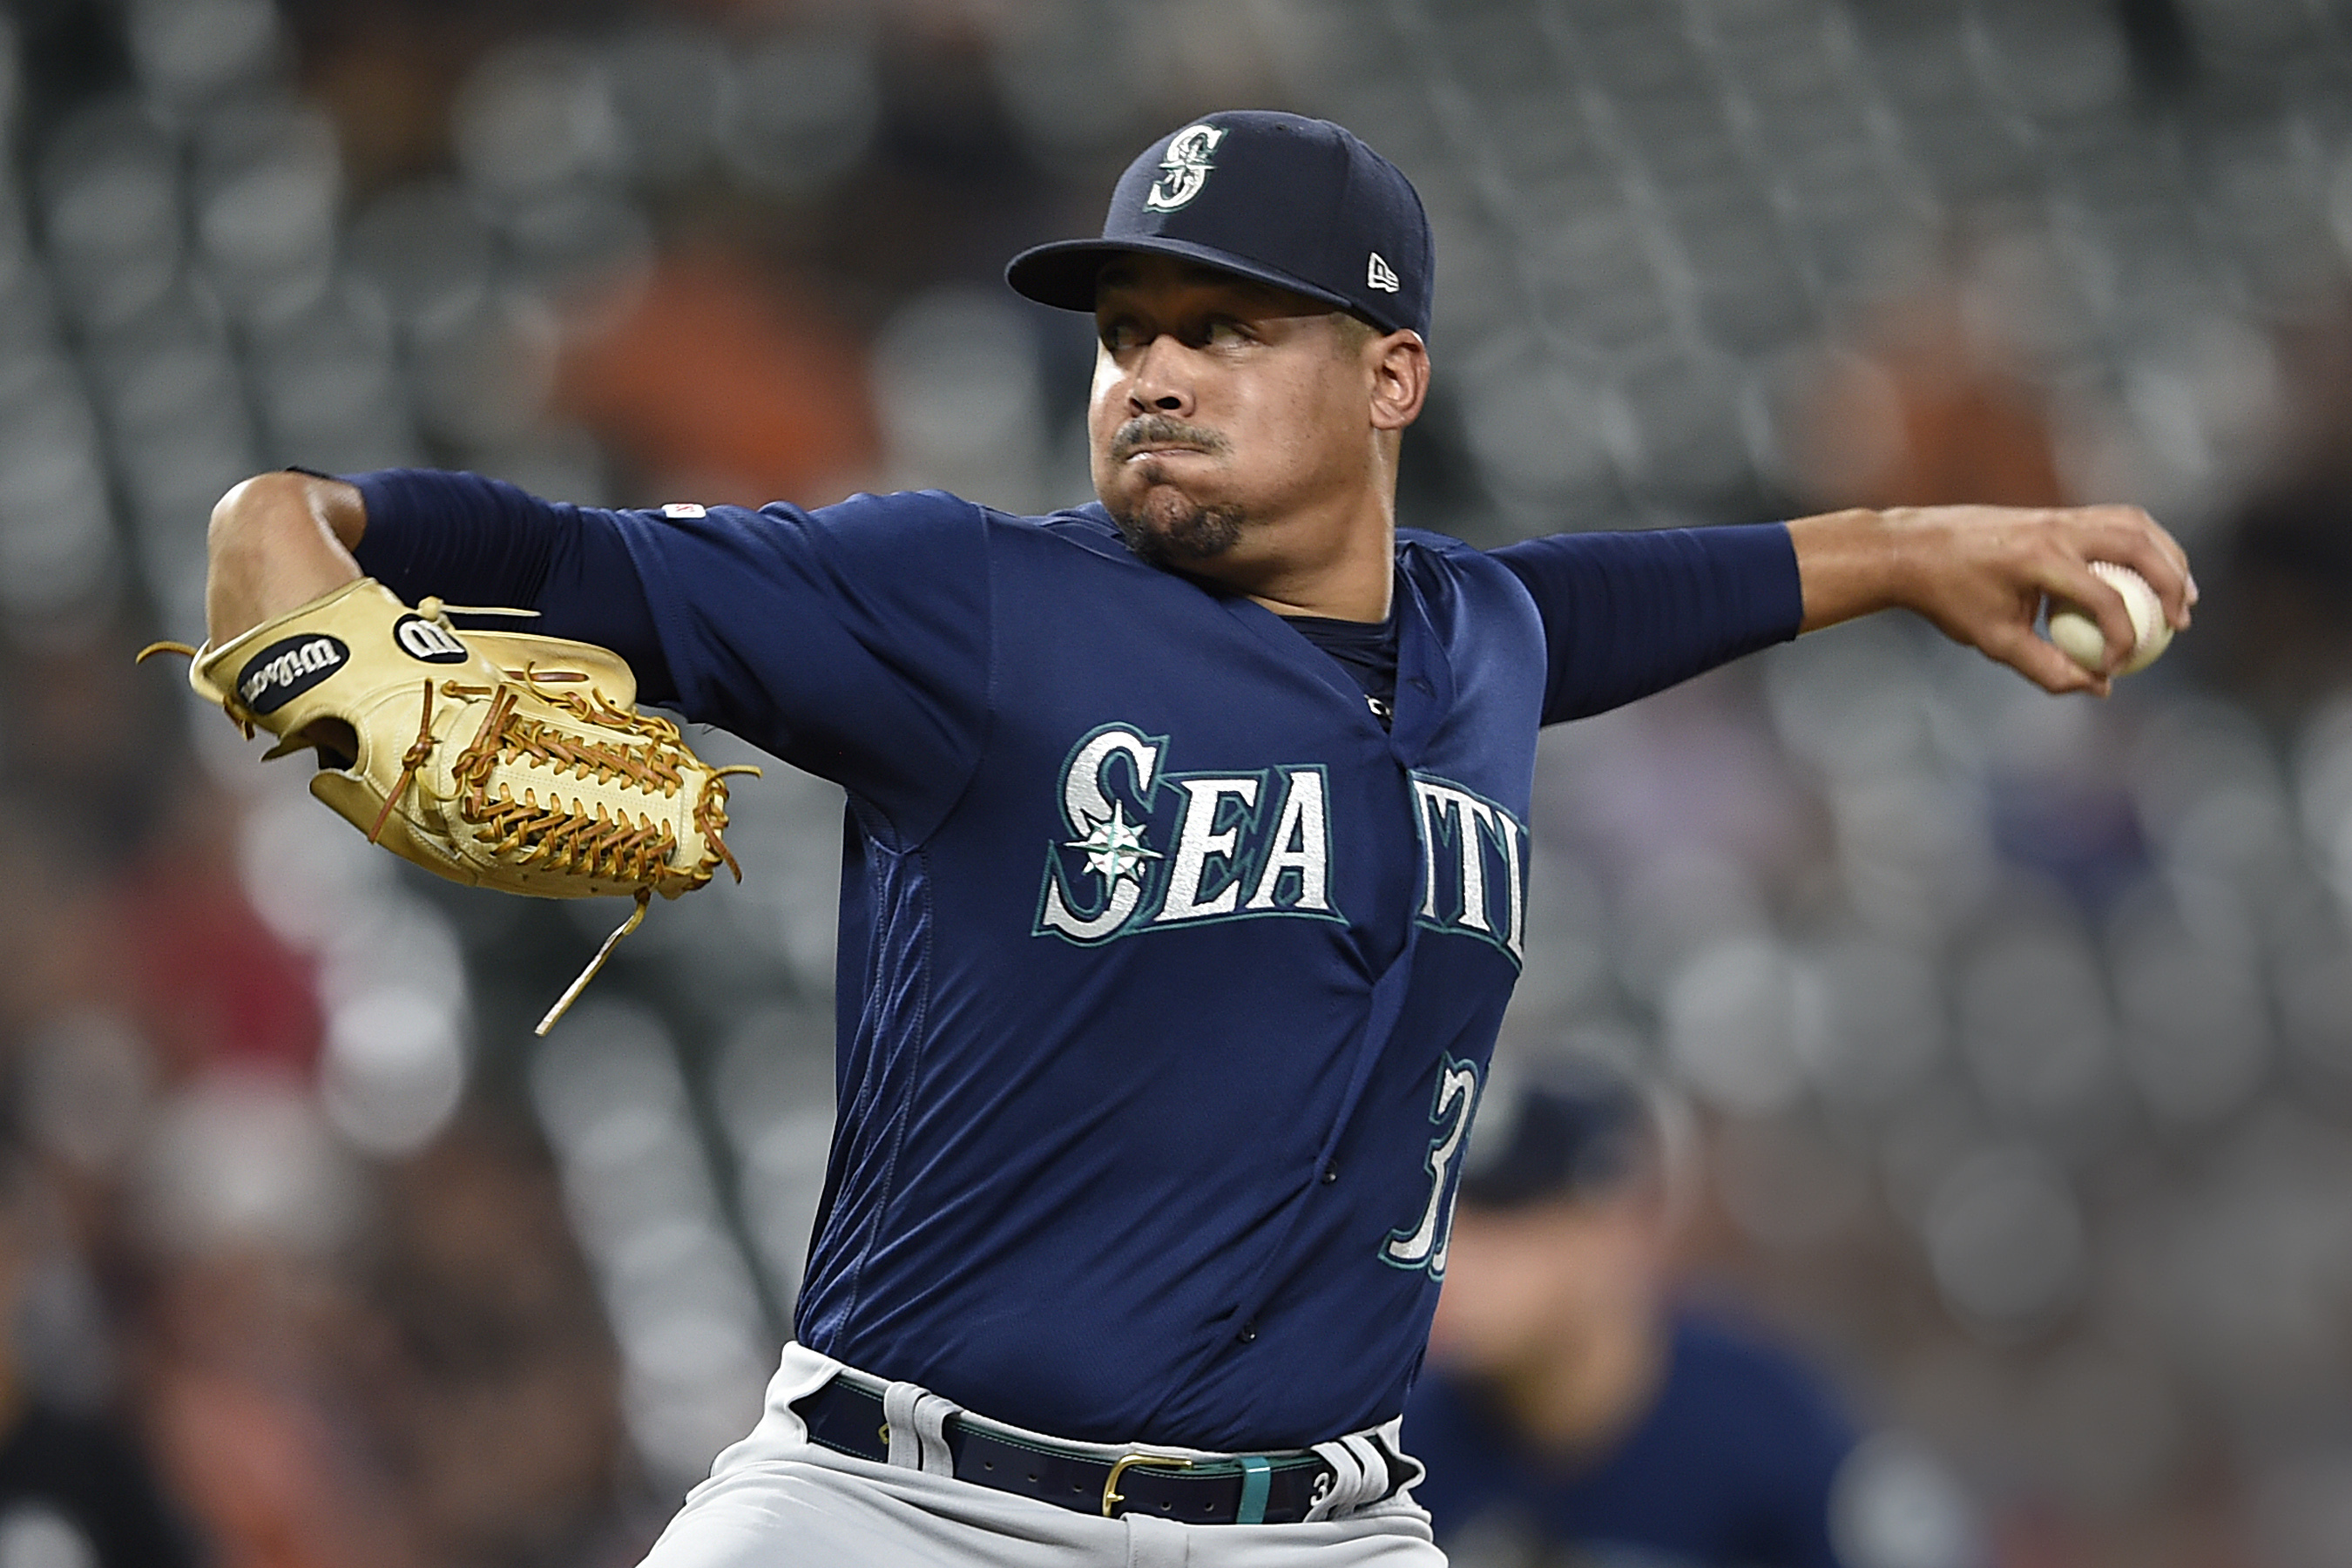 Smith's sprint in 13th to lift Mariners over Orioles 7-6